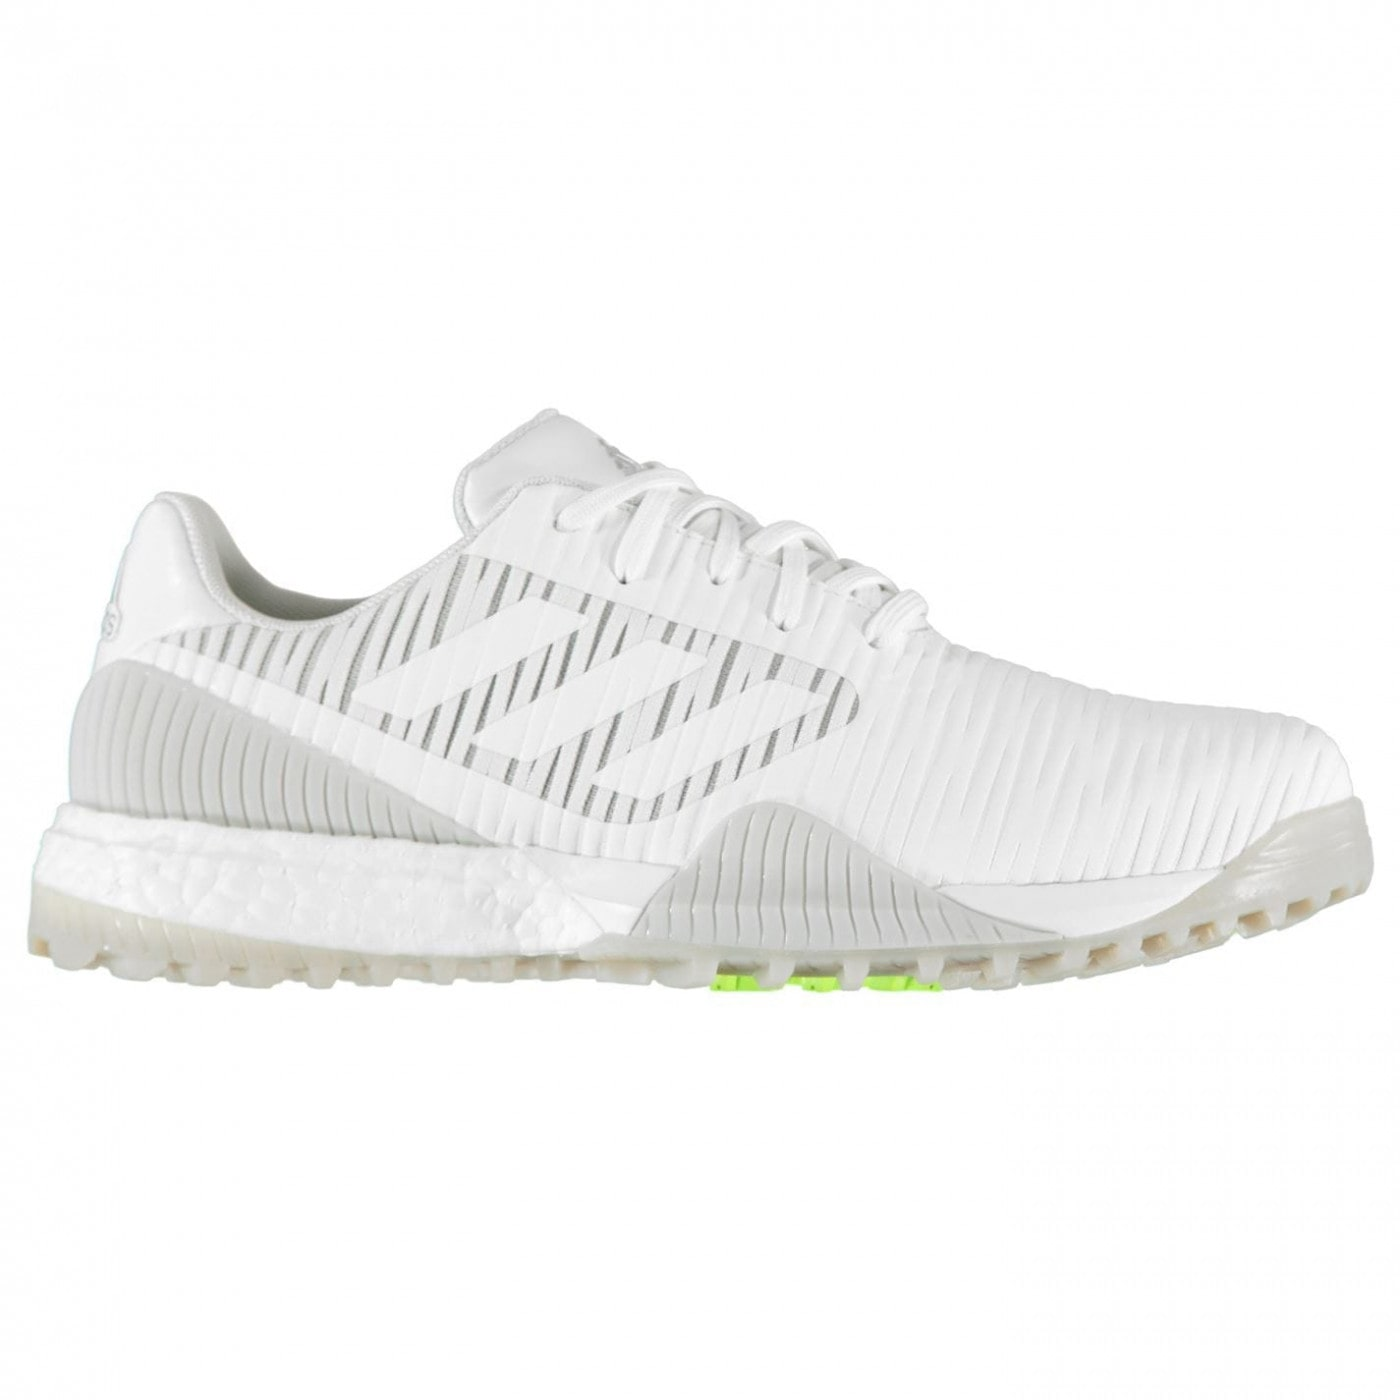 Adidas CODECHAOS Sport Mens Spikeless Golf Shoes